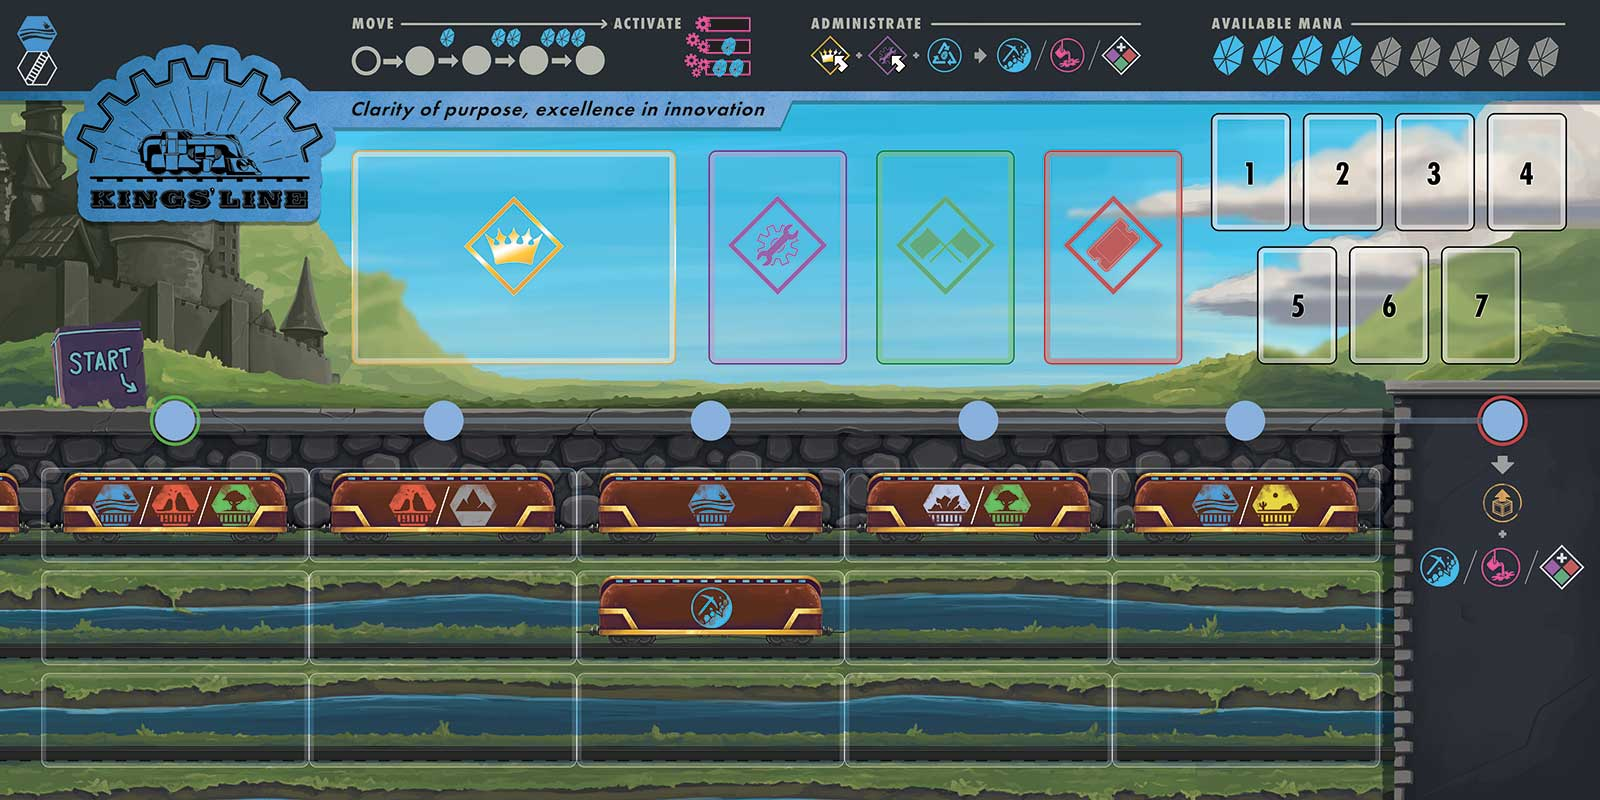 Kings' Line is excellent at building on Lake-type terrain, and can generate mana more efficiently than other companies.